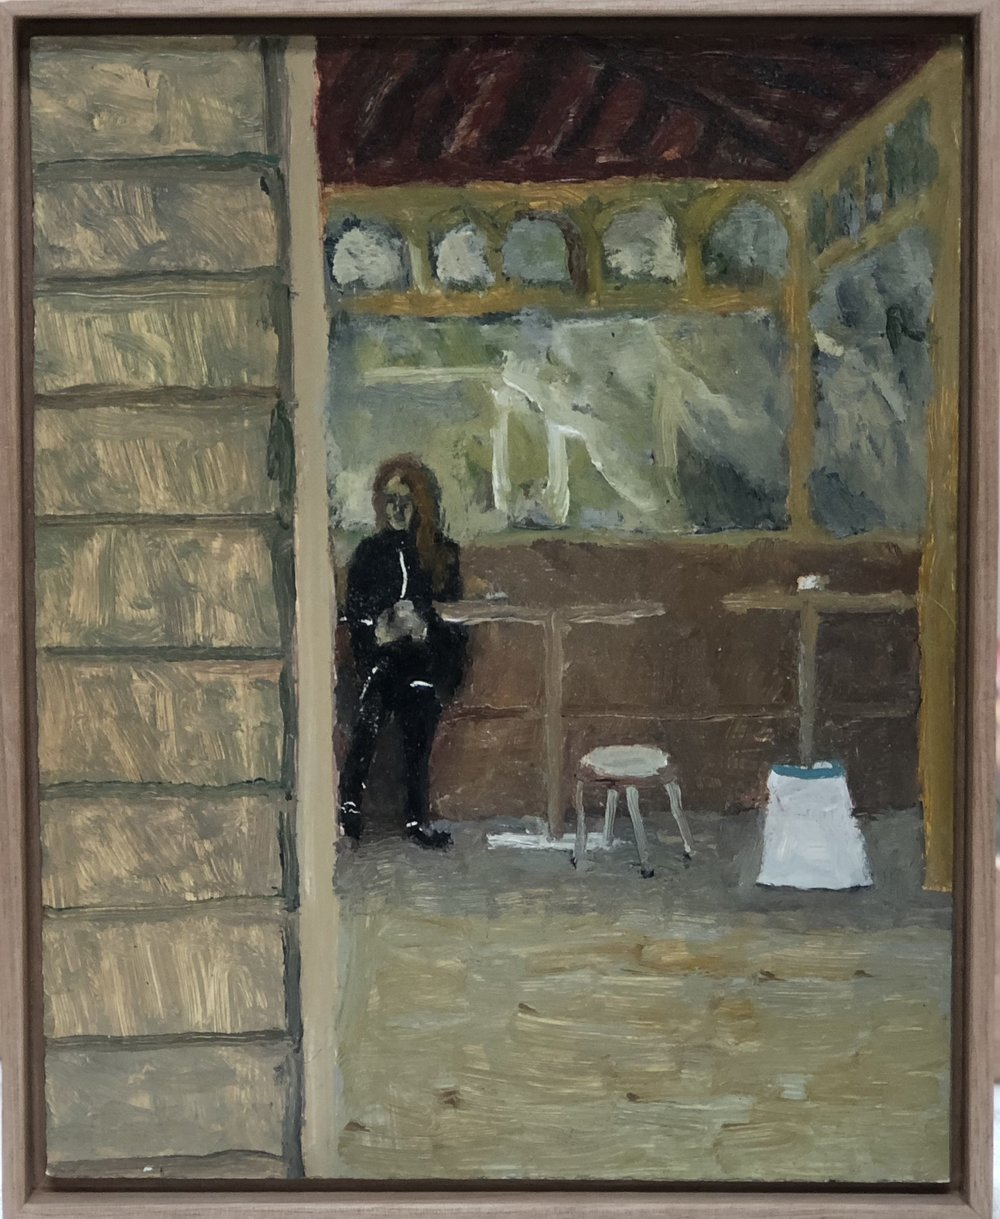 Paul Maher  Corner shopgirl on coffee break  2017 oil on board 21.5 x 17.5cm framed